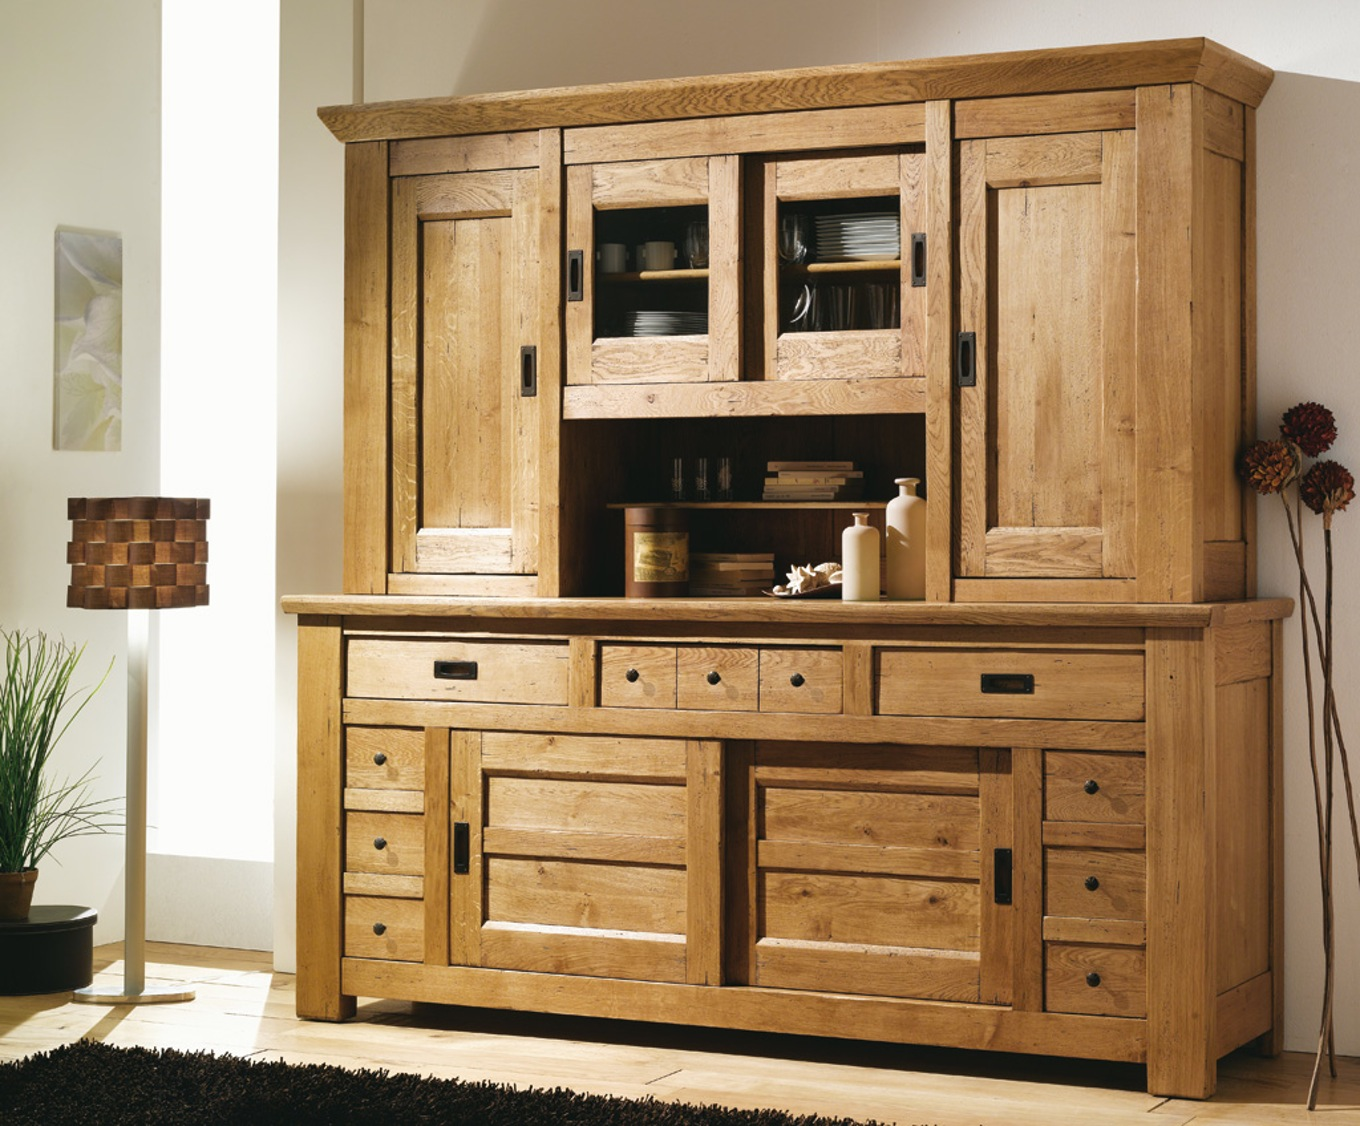 meuble de cuisine buffet id es de d coration int rieure. Black Bedroom Furniture Sets. Home Design Ideas